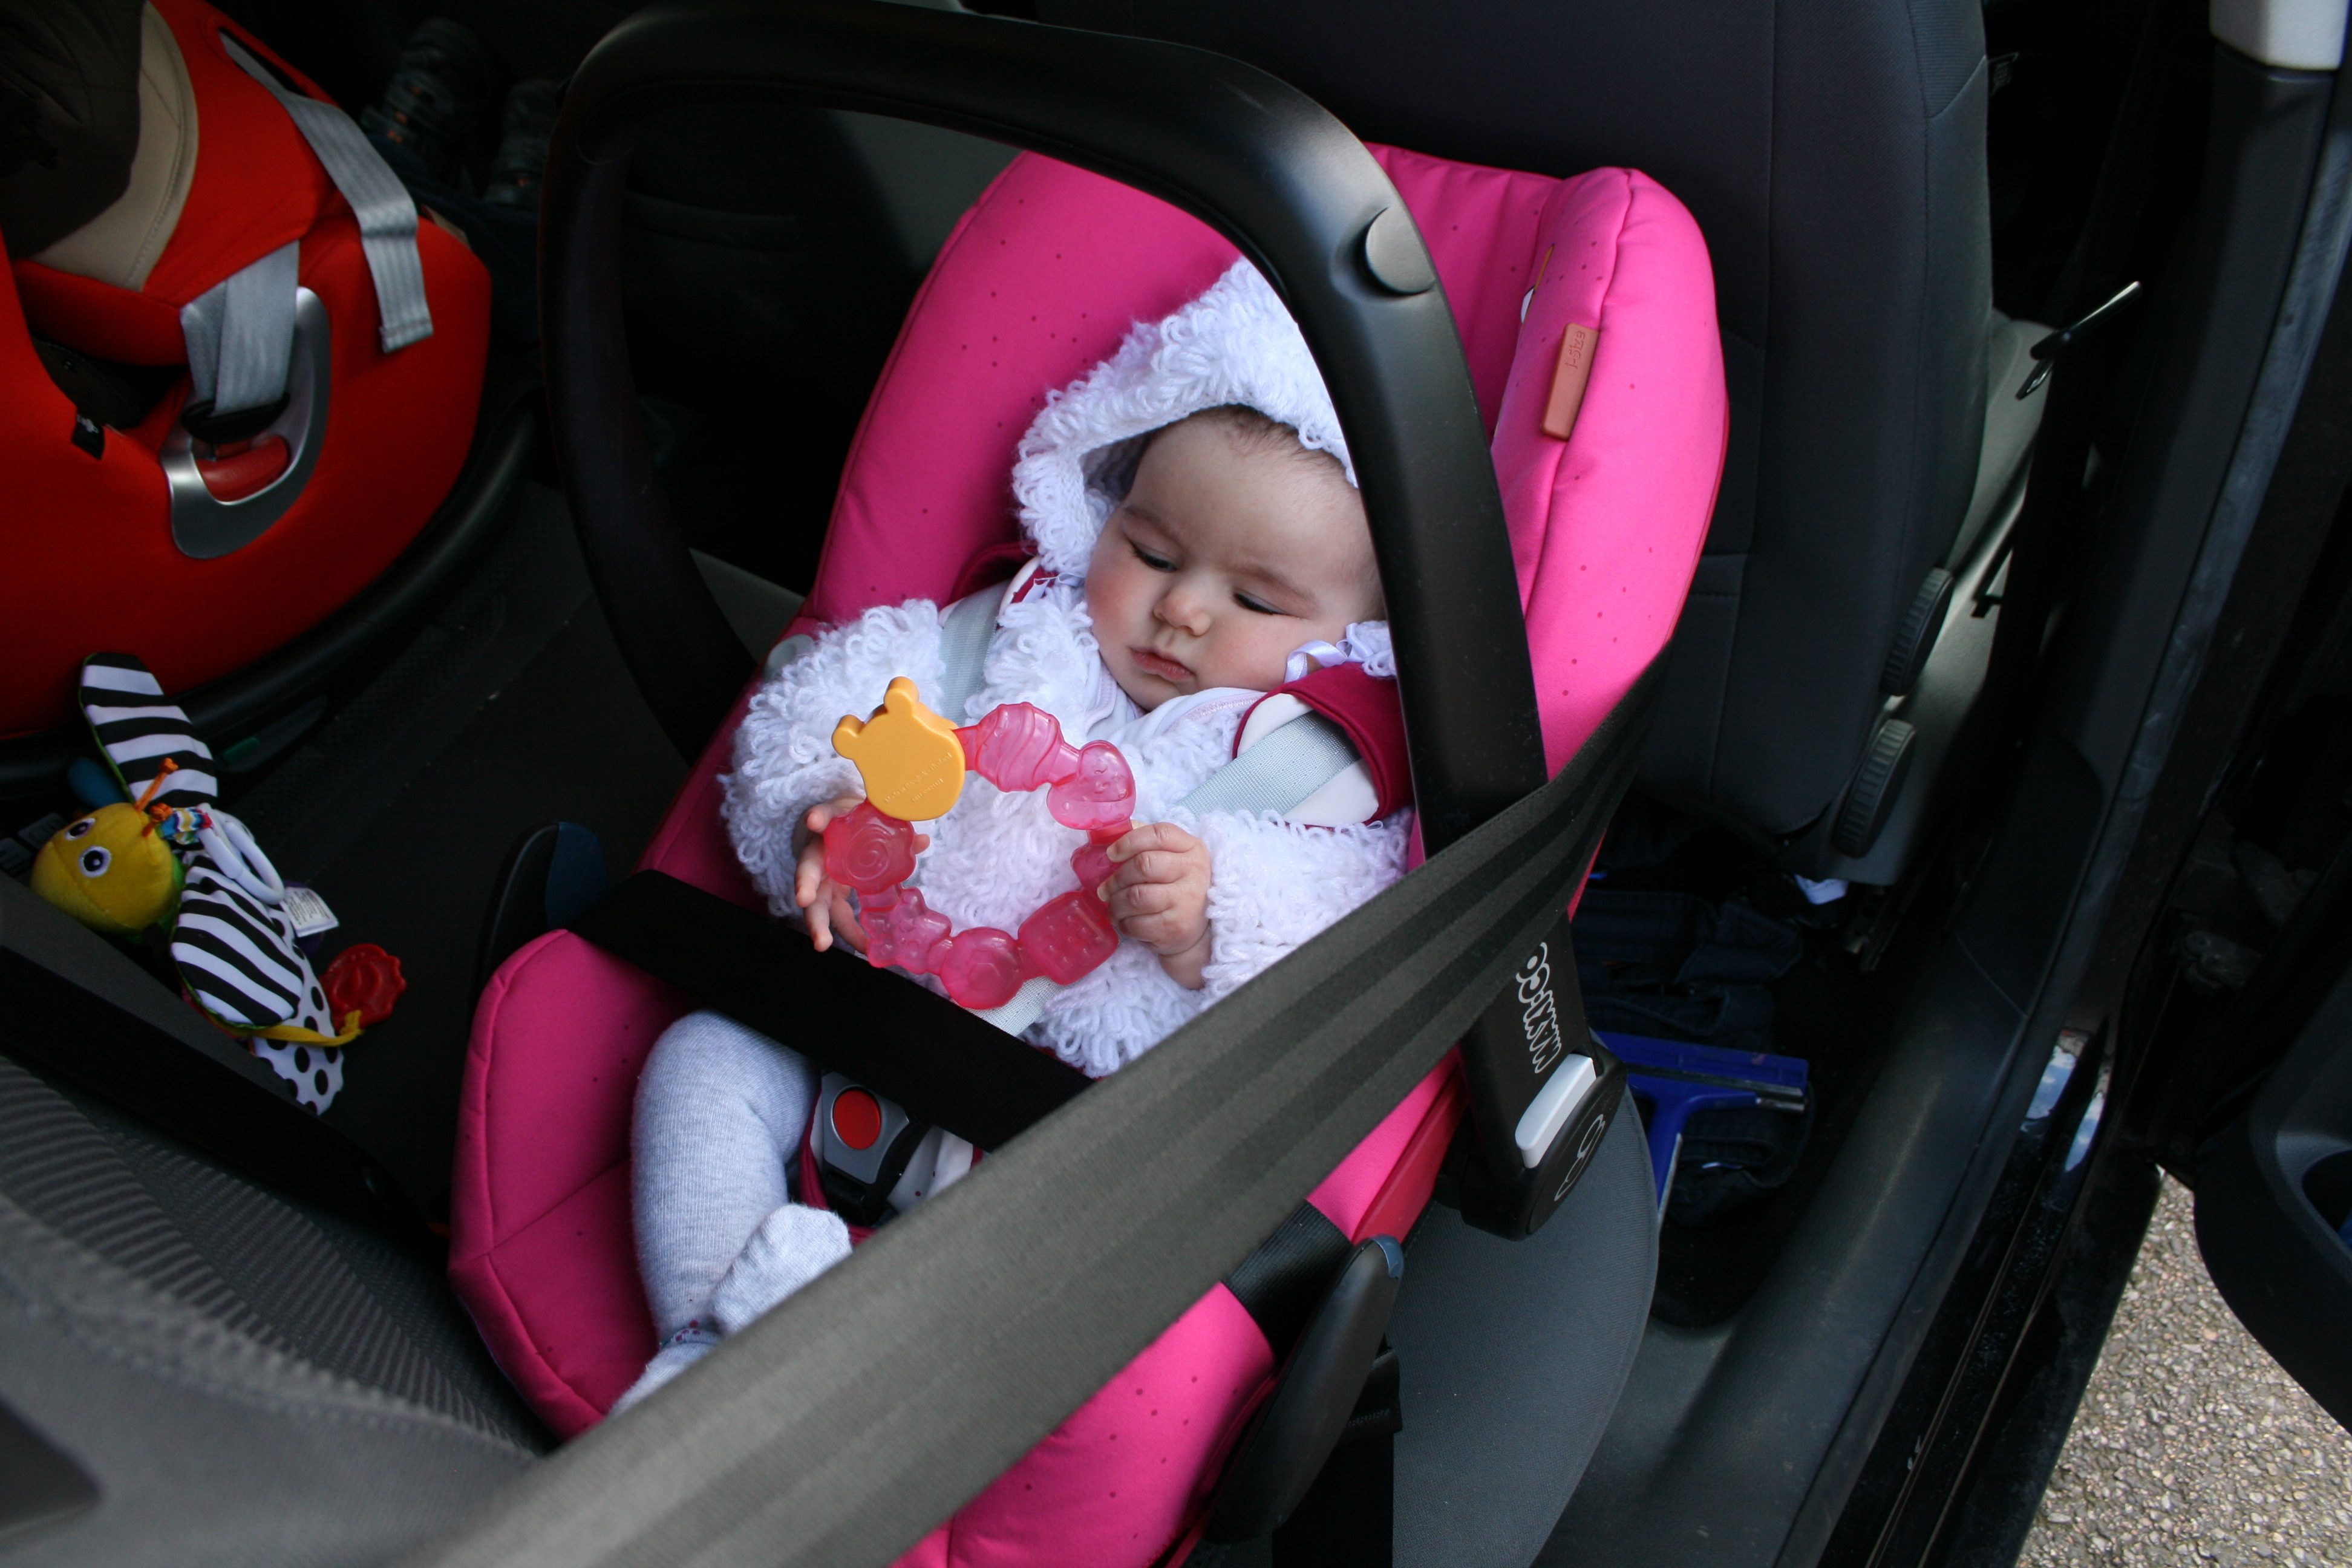 Maxi Cosi Car Seat Cabriofix Manual Maxi Cosi Pebble Car Seat Manual Velcromag